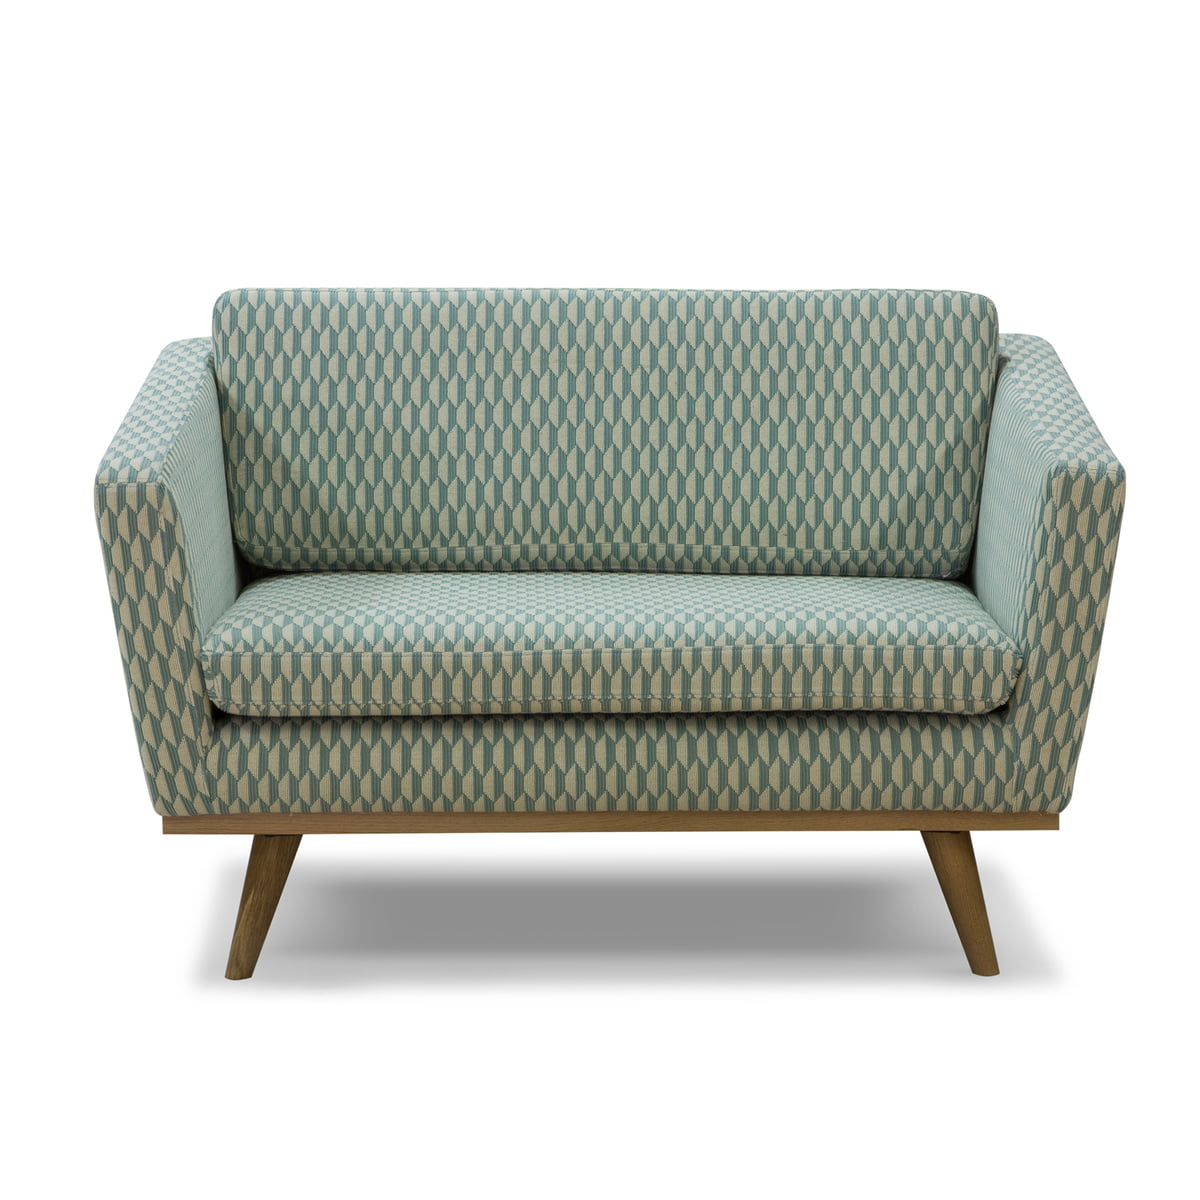 fifties sofa 120 from red edition in bakou celadon t31